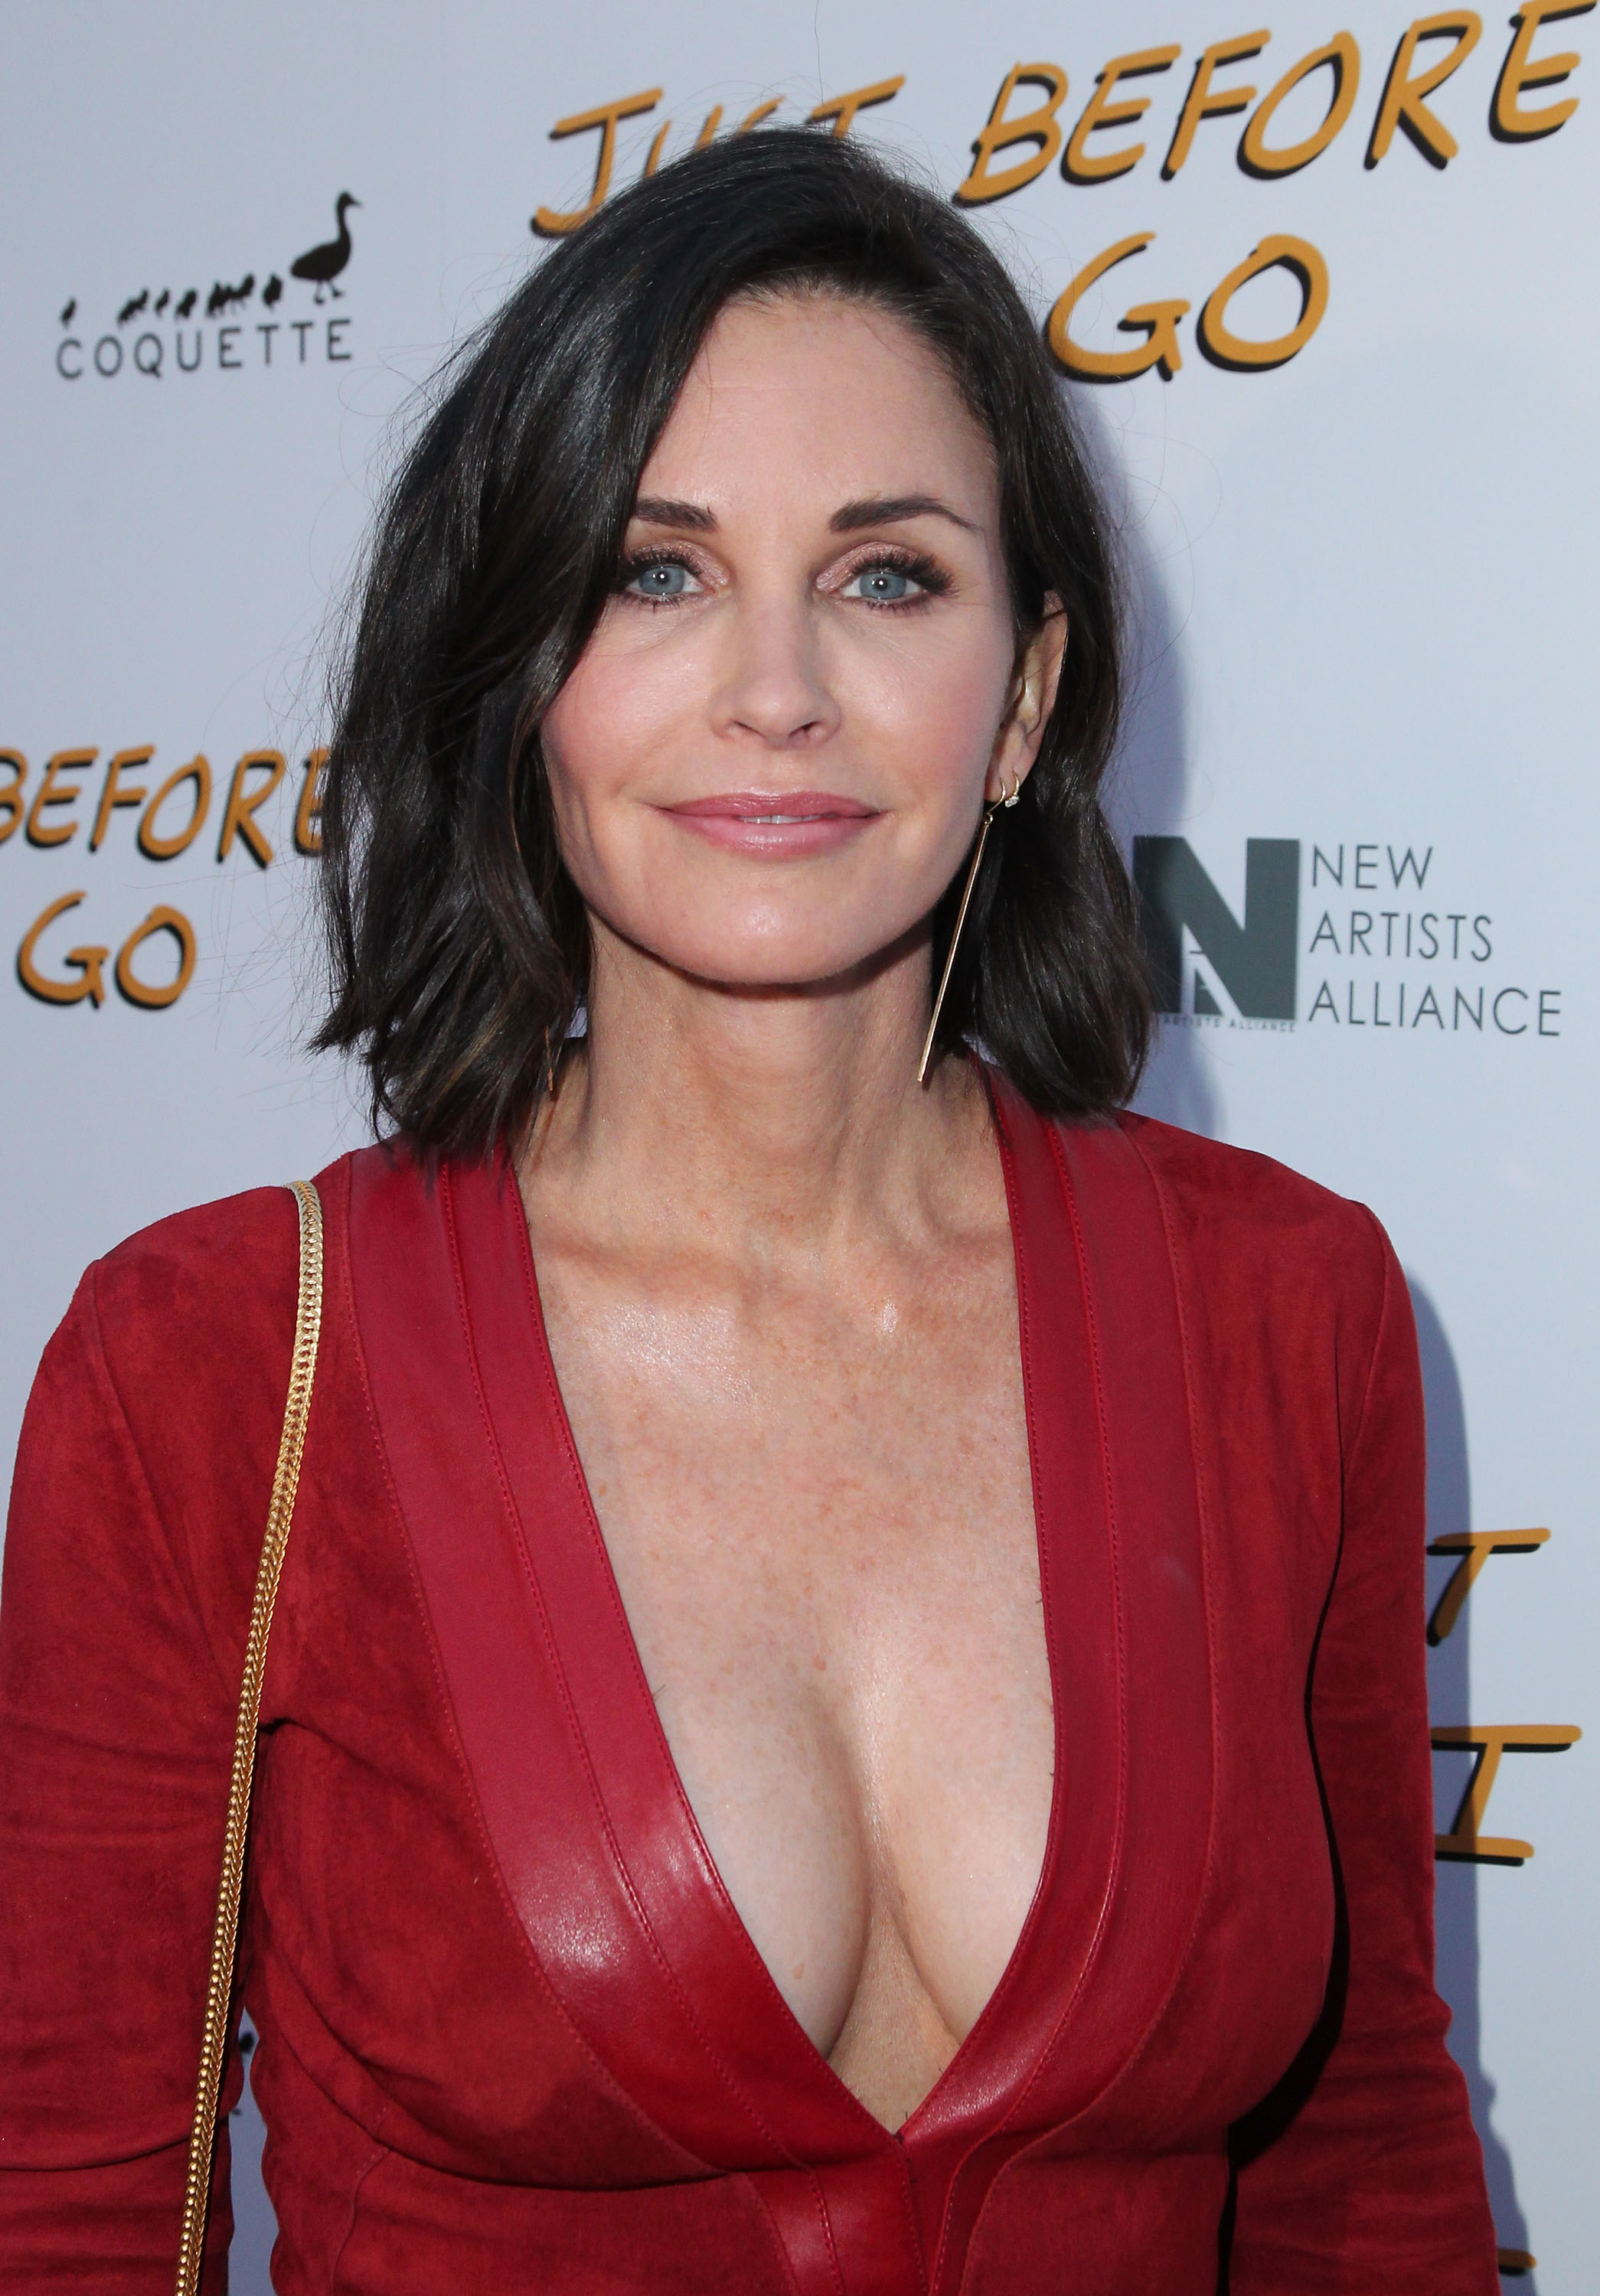 Courtney Cox (Courteney Cox) actress: photo, biography, personal life 2018 5